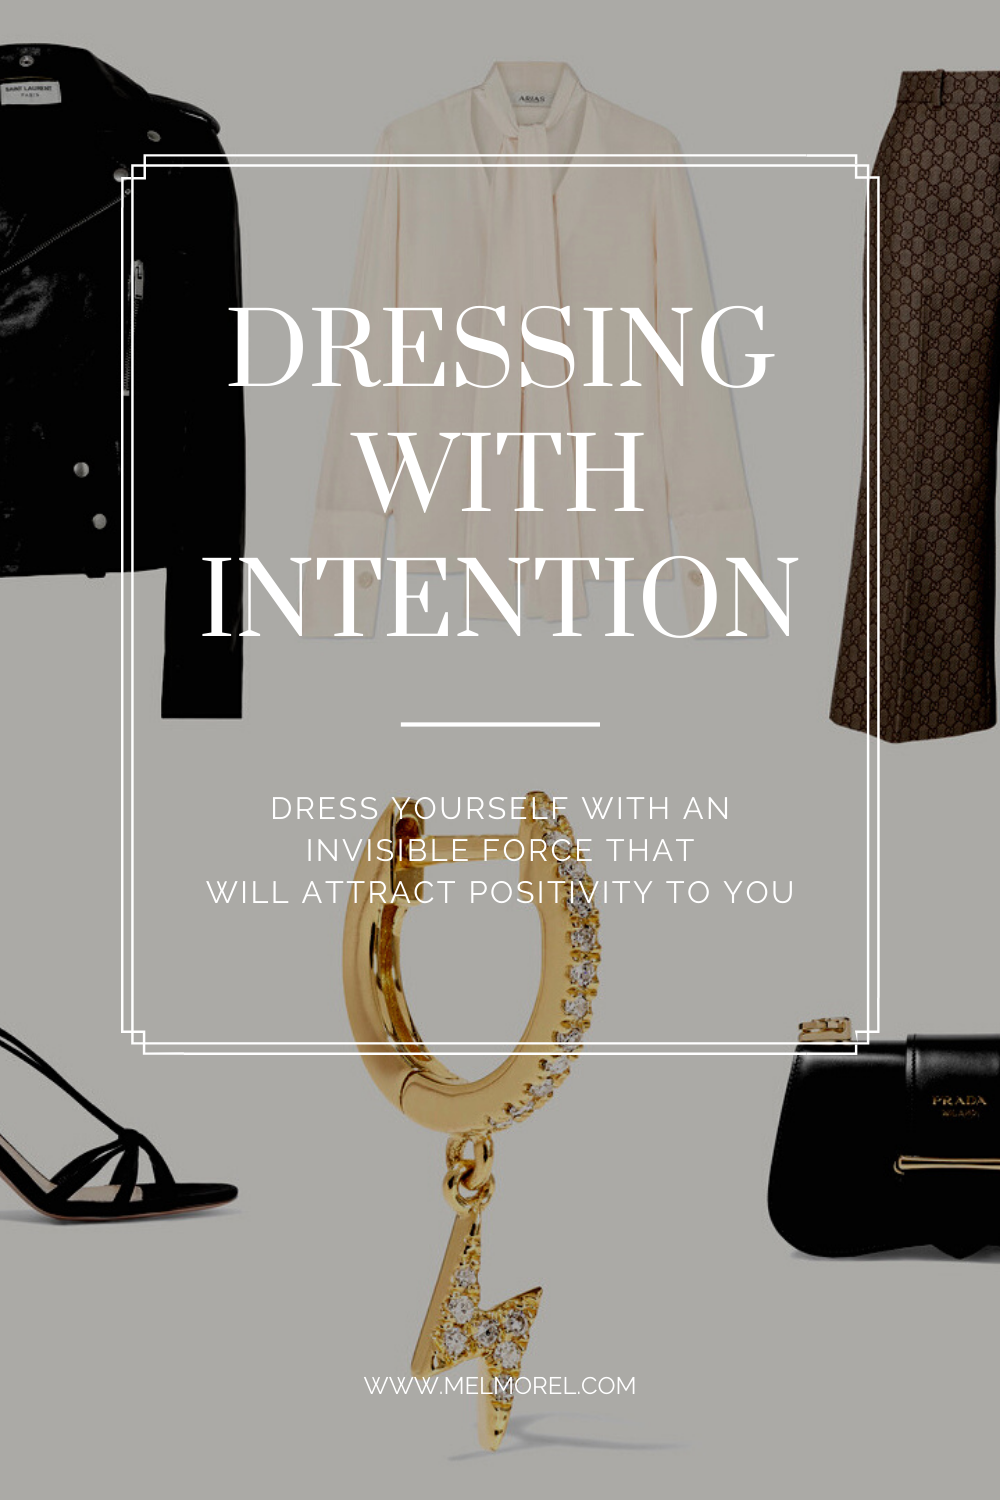 Dressing with intentention-fashion moodboard-chic fashion-elegant fashion-stylish fashion